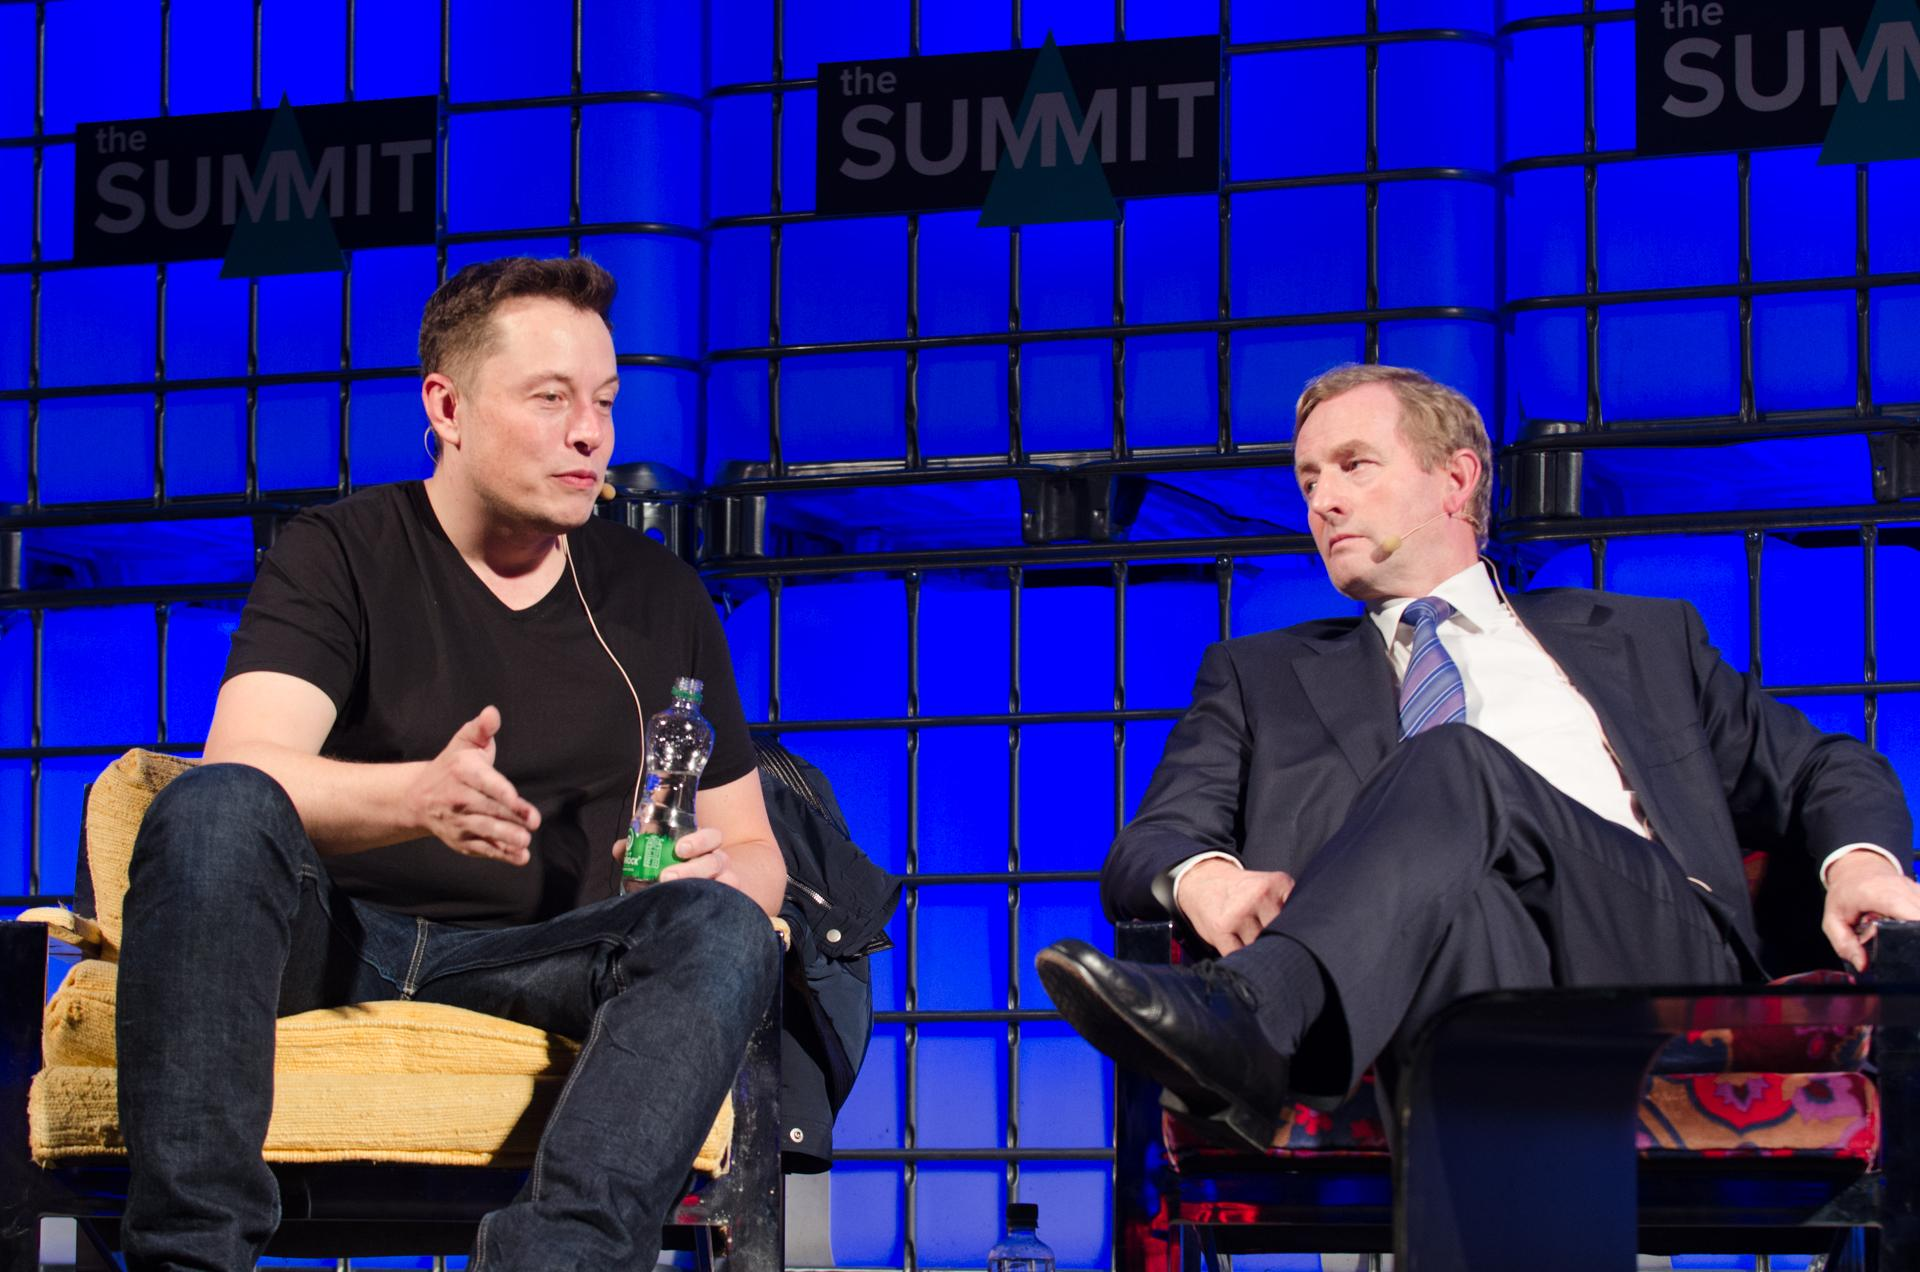 Elon Musk Advocates For Becoming A Cyborg